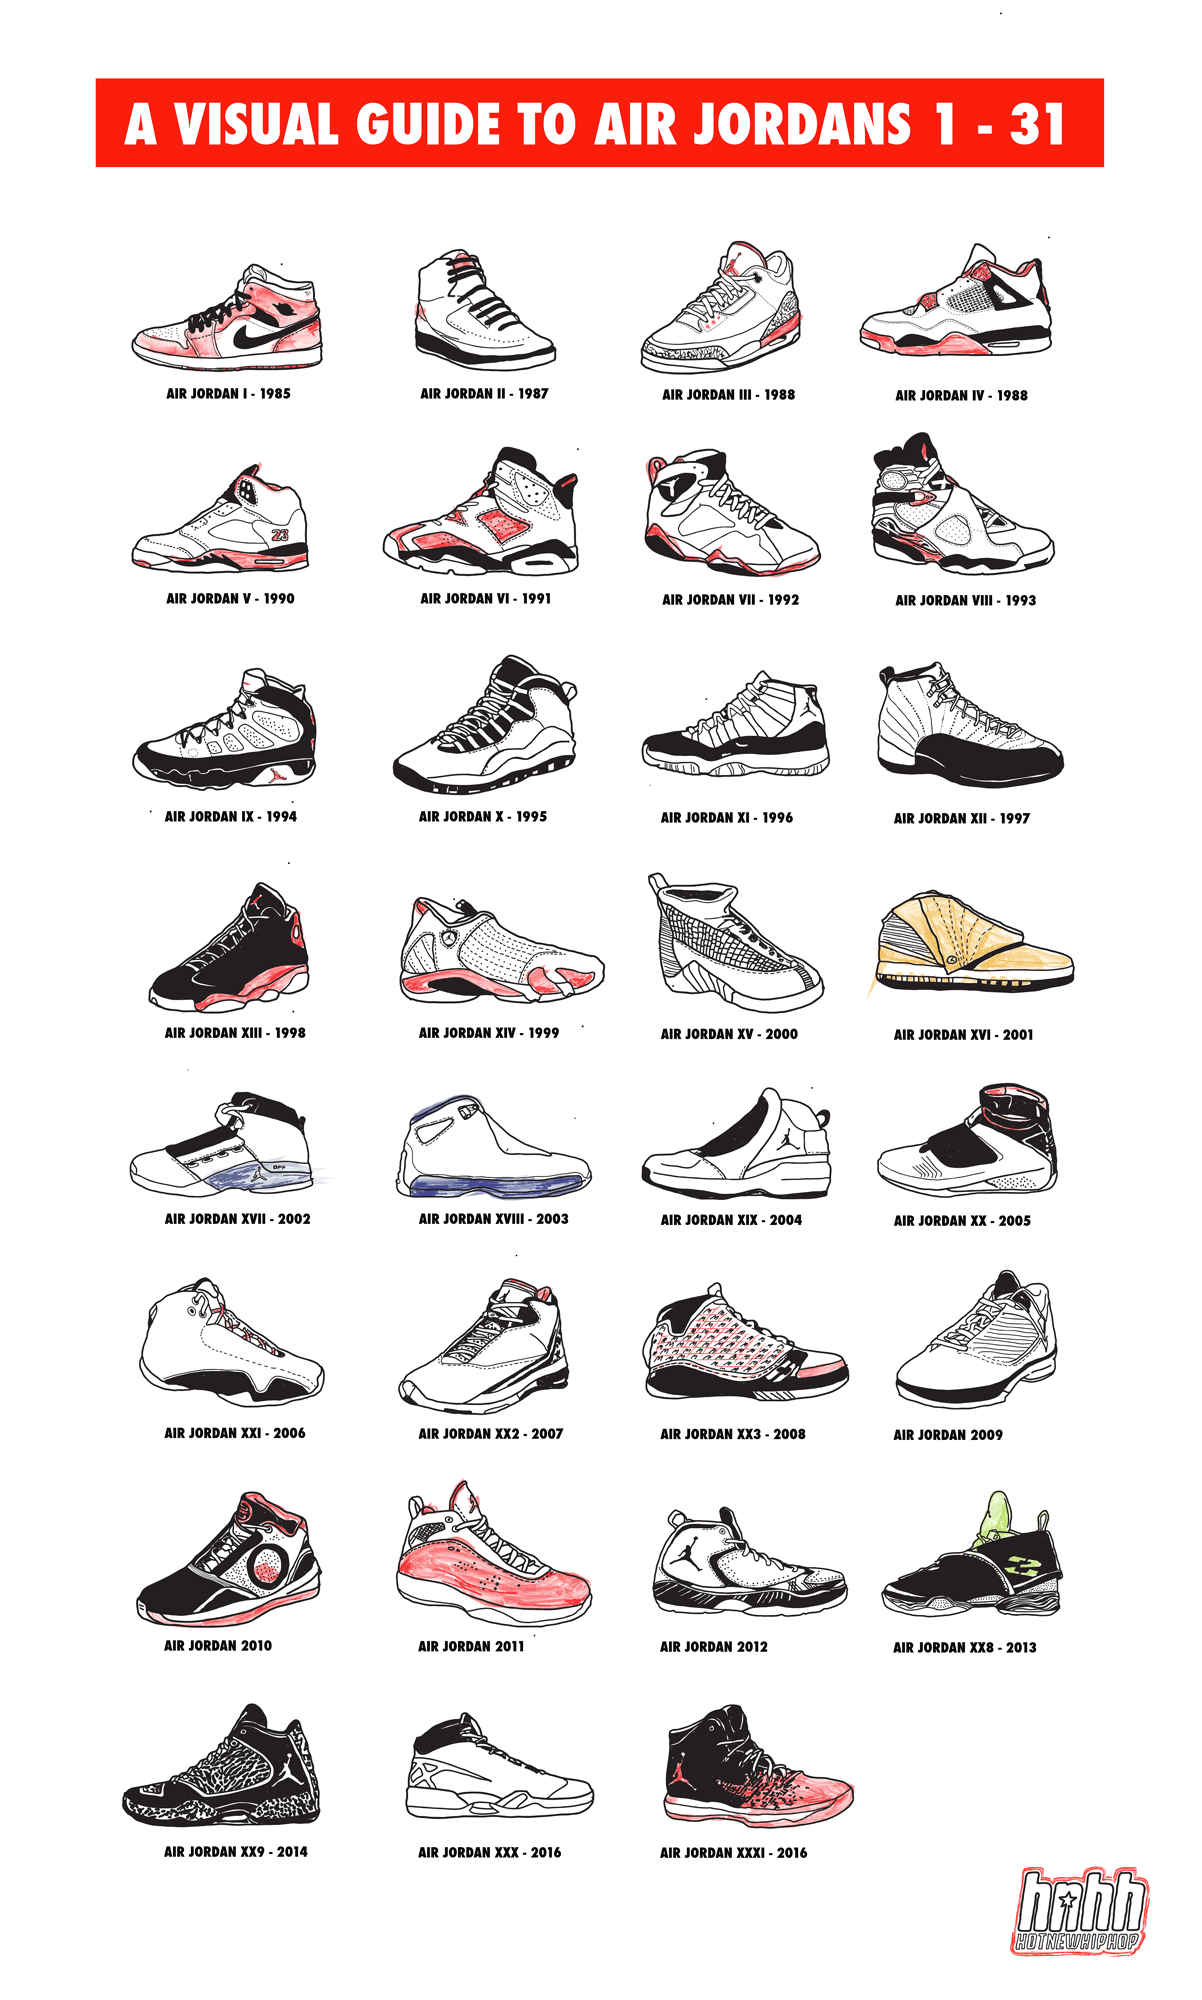 31 years of Air Jordan signatures.